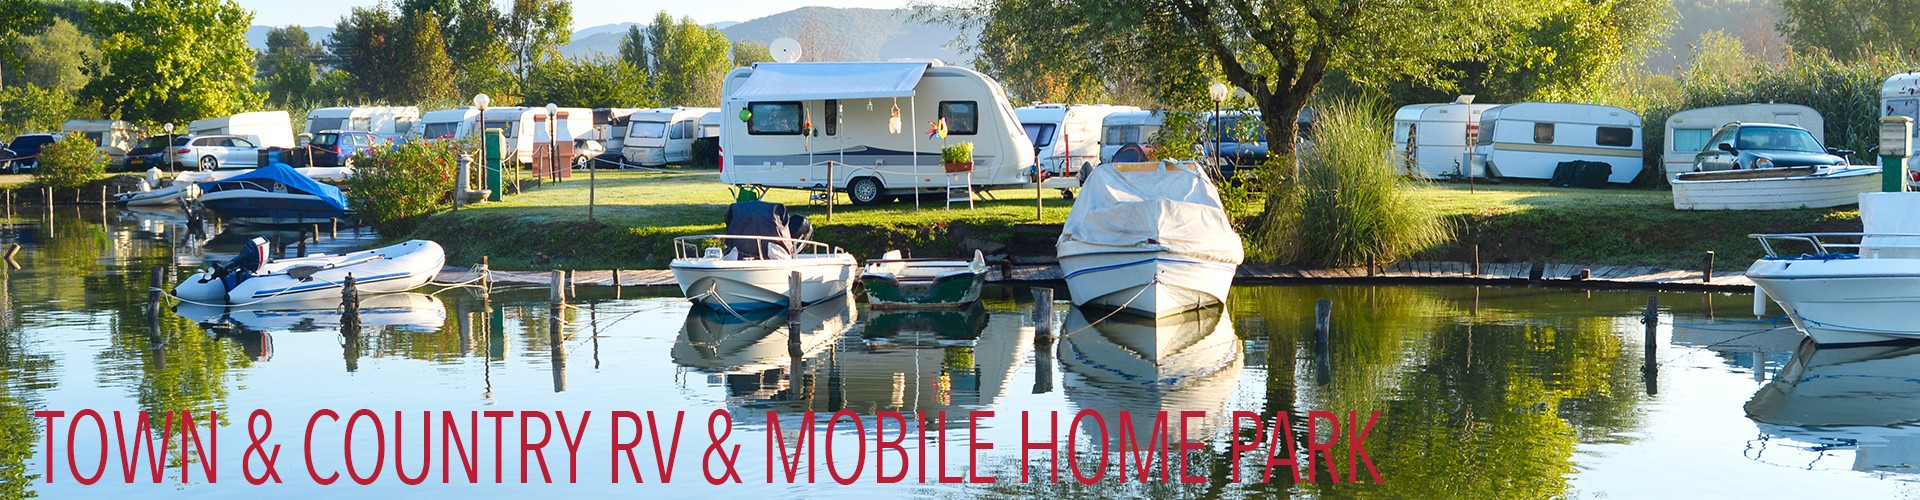 Town & Country RV & Mobile Home Park